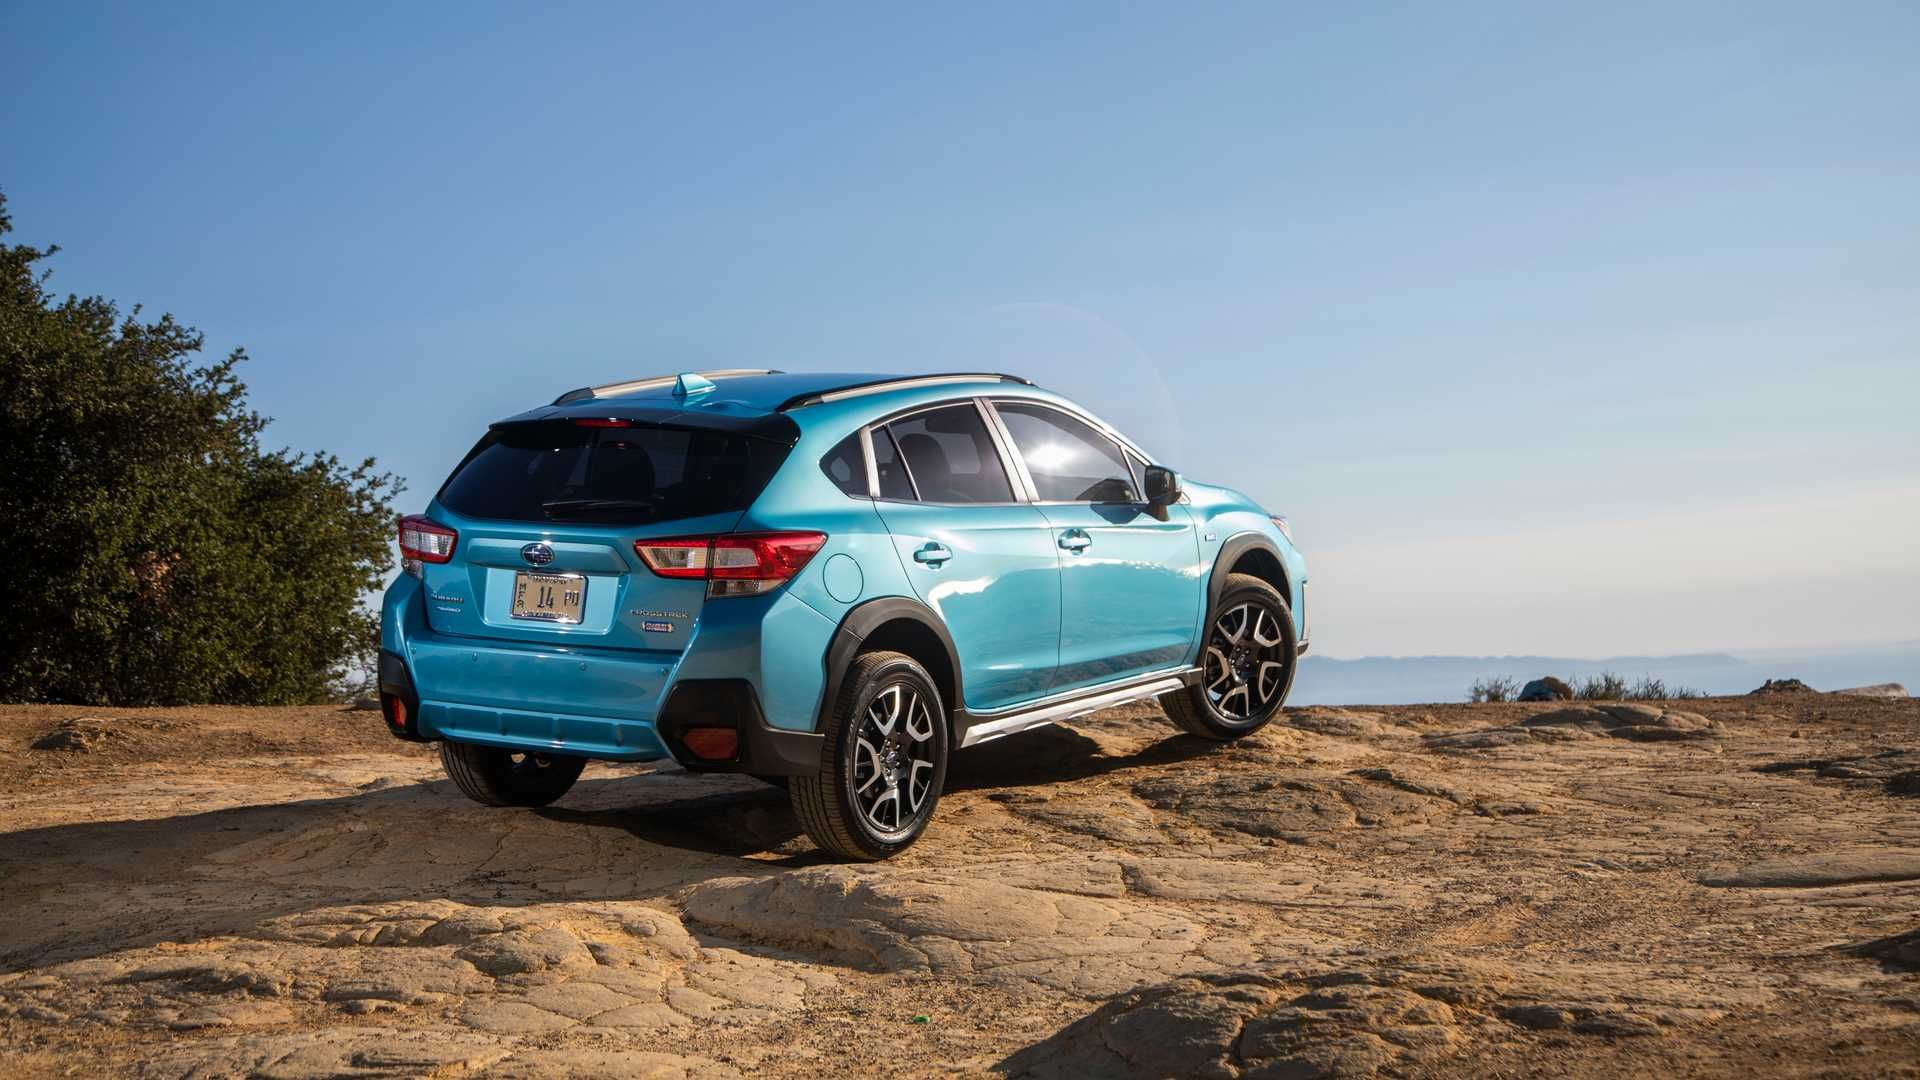 Subaru Introduces Its First Ever Plug In Hybrid Model The New Crosstrek Hybrid It Is Also Capable Off Road Subaru Suba Subaru Crosstrek Subaru Used Volvo